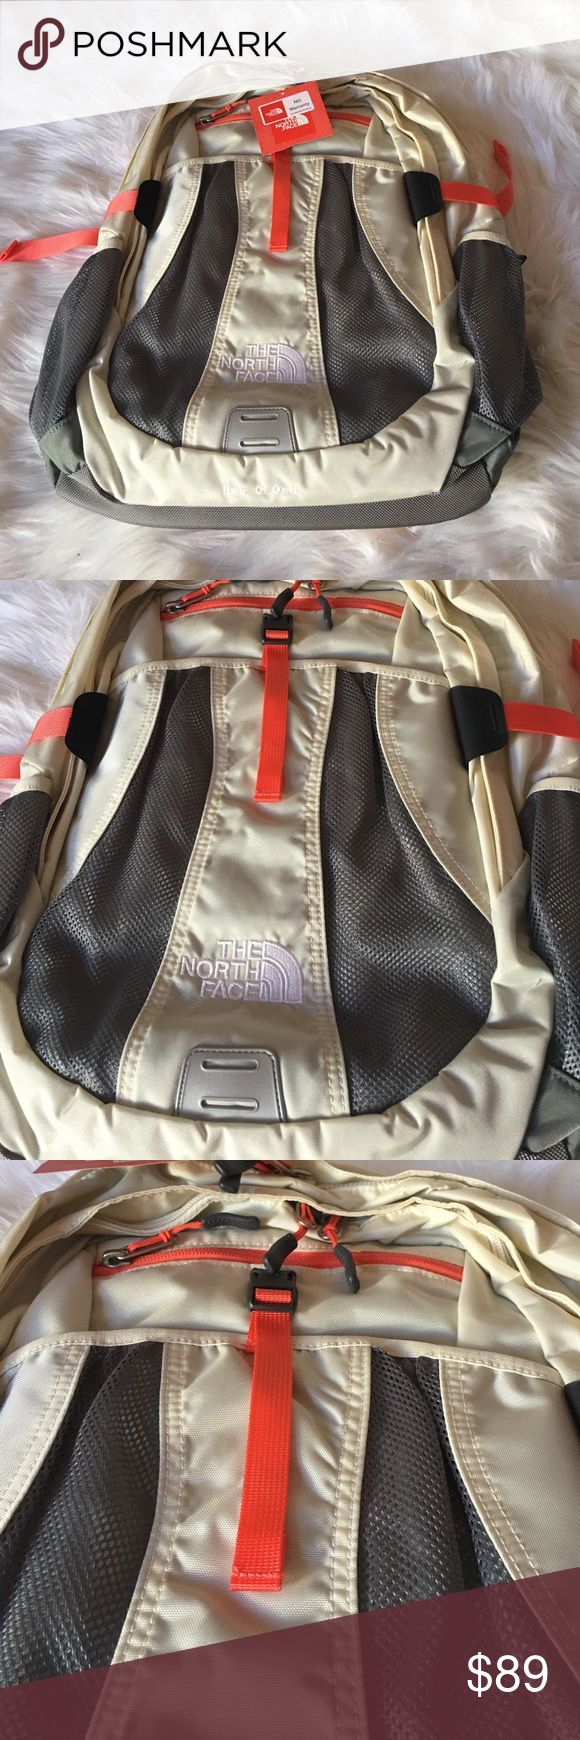 """The North Face Women's Recon White Brand new The North Face Women's Recon backpack in Vintage White/Orange.FlexVent front panel. Hydration port. Large exterior mesh slip pockets. Fits most 15"""" laptops. Side compression straps. Side release buckle closure. Two-way zip closures. Women's specific injection-molded with padded shoulders. 420-denier nylon fabric. 17"""" x 14"""" x 4"""" ✨NO LOW BALLS Please! The North Face Bags Backpacks"""